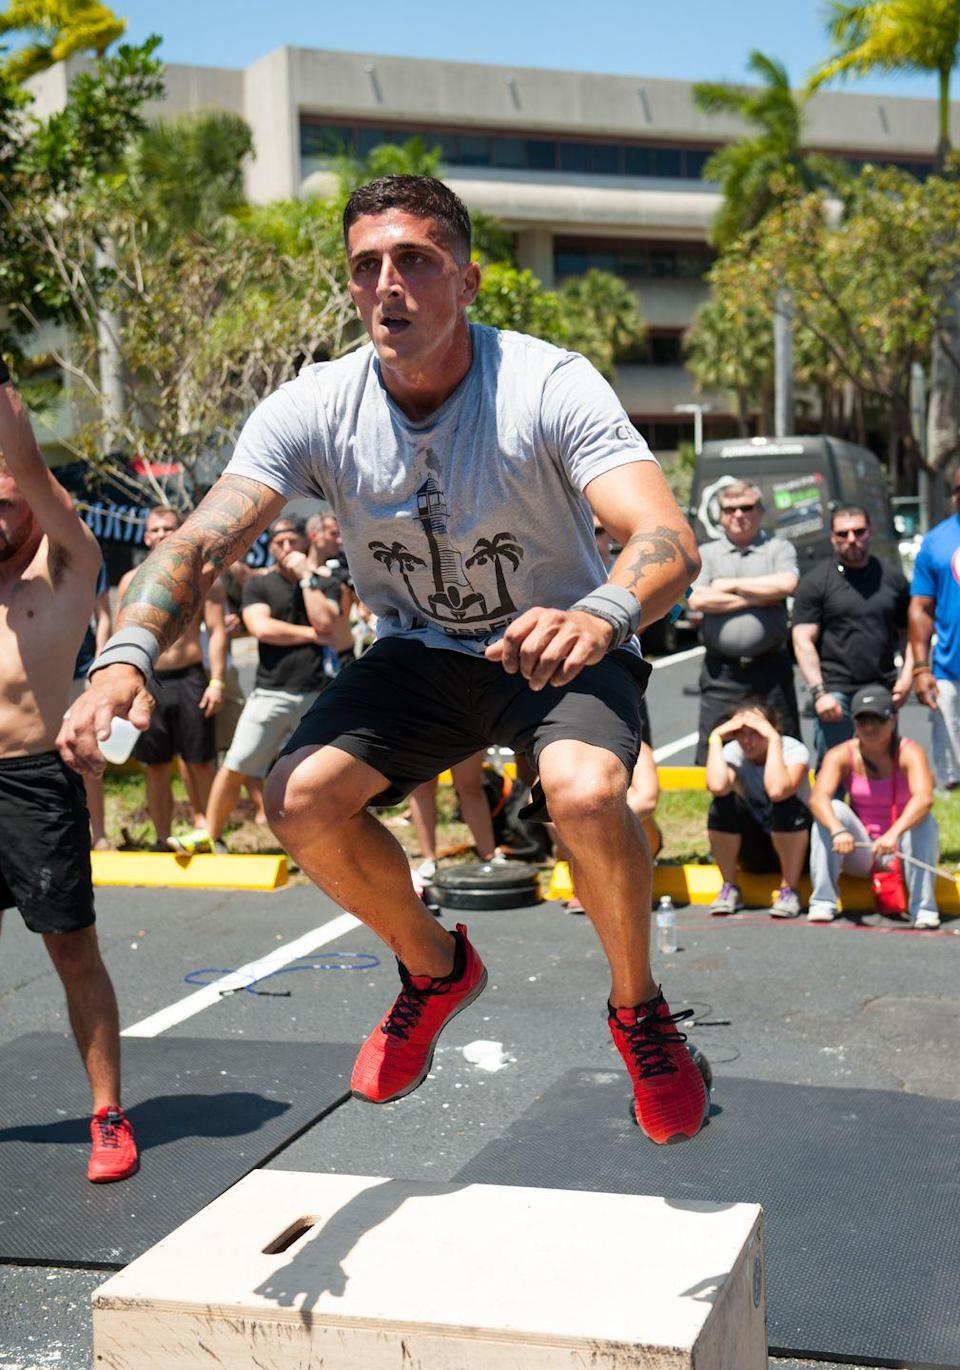 """<p>Any athlete that uses modifications on the challenge <a href=""""https://s3.amazonaws.com/crossfitpubliccontent/CrossFitGames_Rulebook.pdf"""" rel=""""nofollow noopener"""" target=""""_blank"""" data-ylk=""""slk:will not receive points"""" class=""""link rapid-noclick-resp"""">will not receive points</a> for that event. However, if CrossFit provides a scaled-back version of the movement, contestants can follow this modification.</p>"""